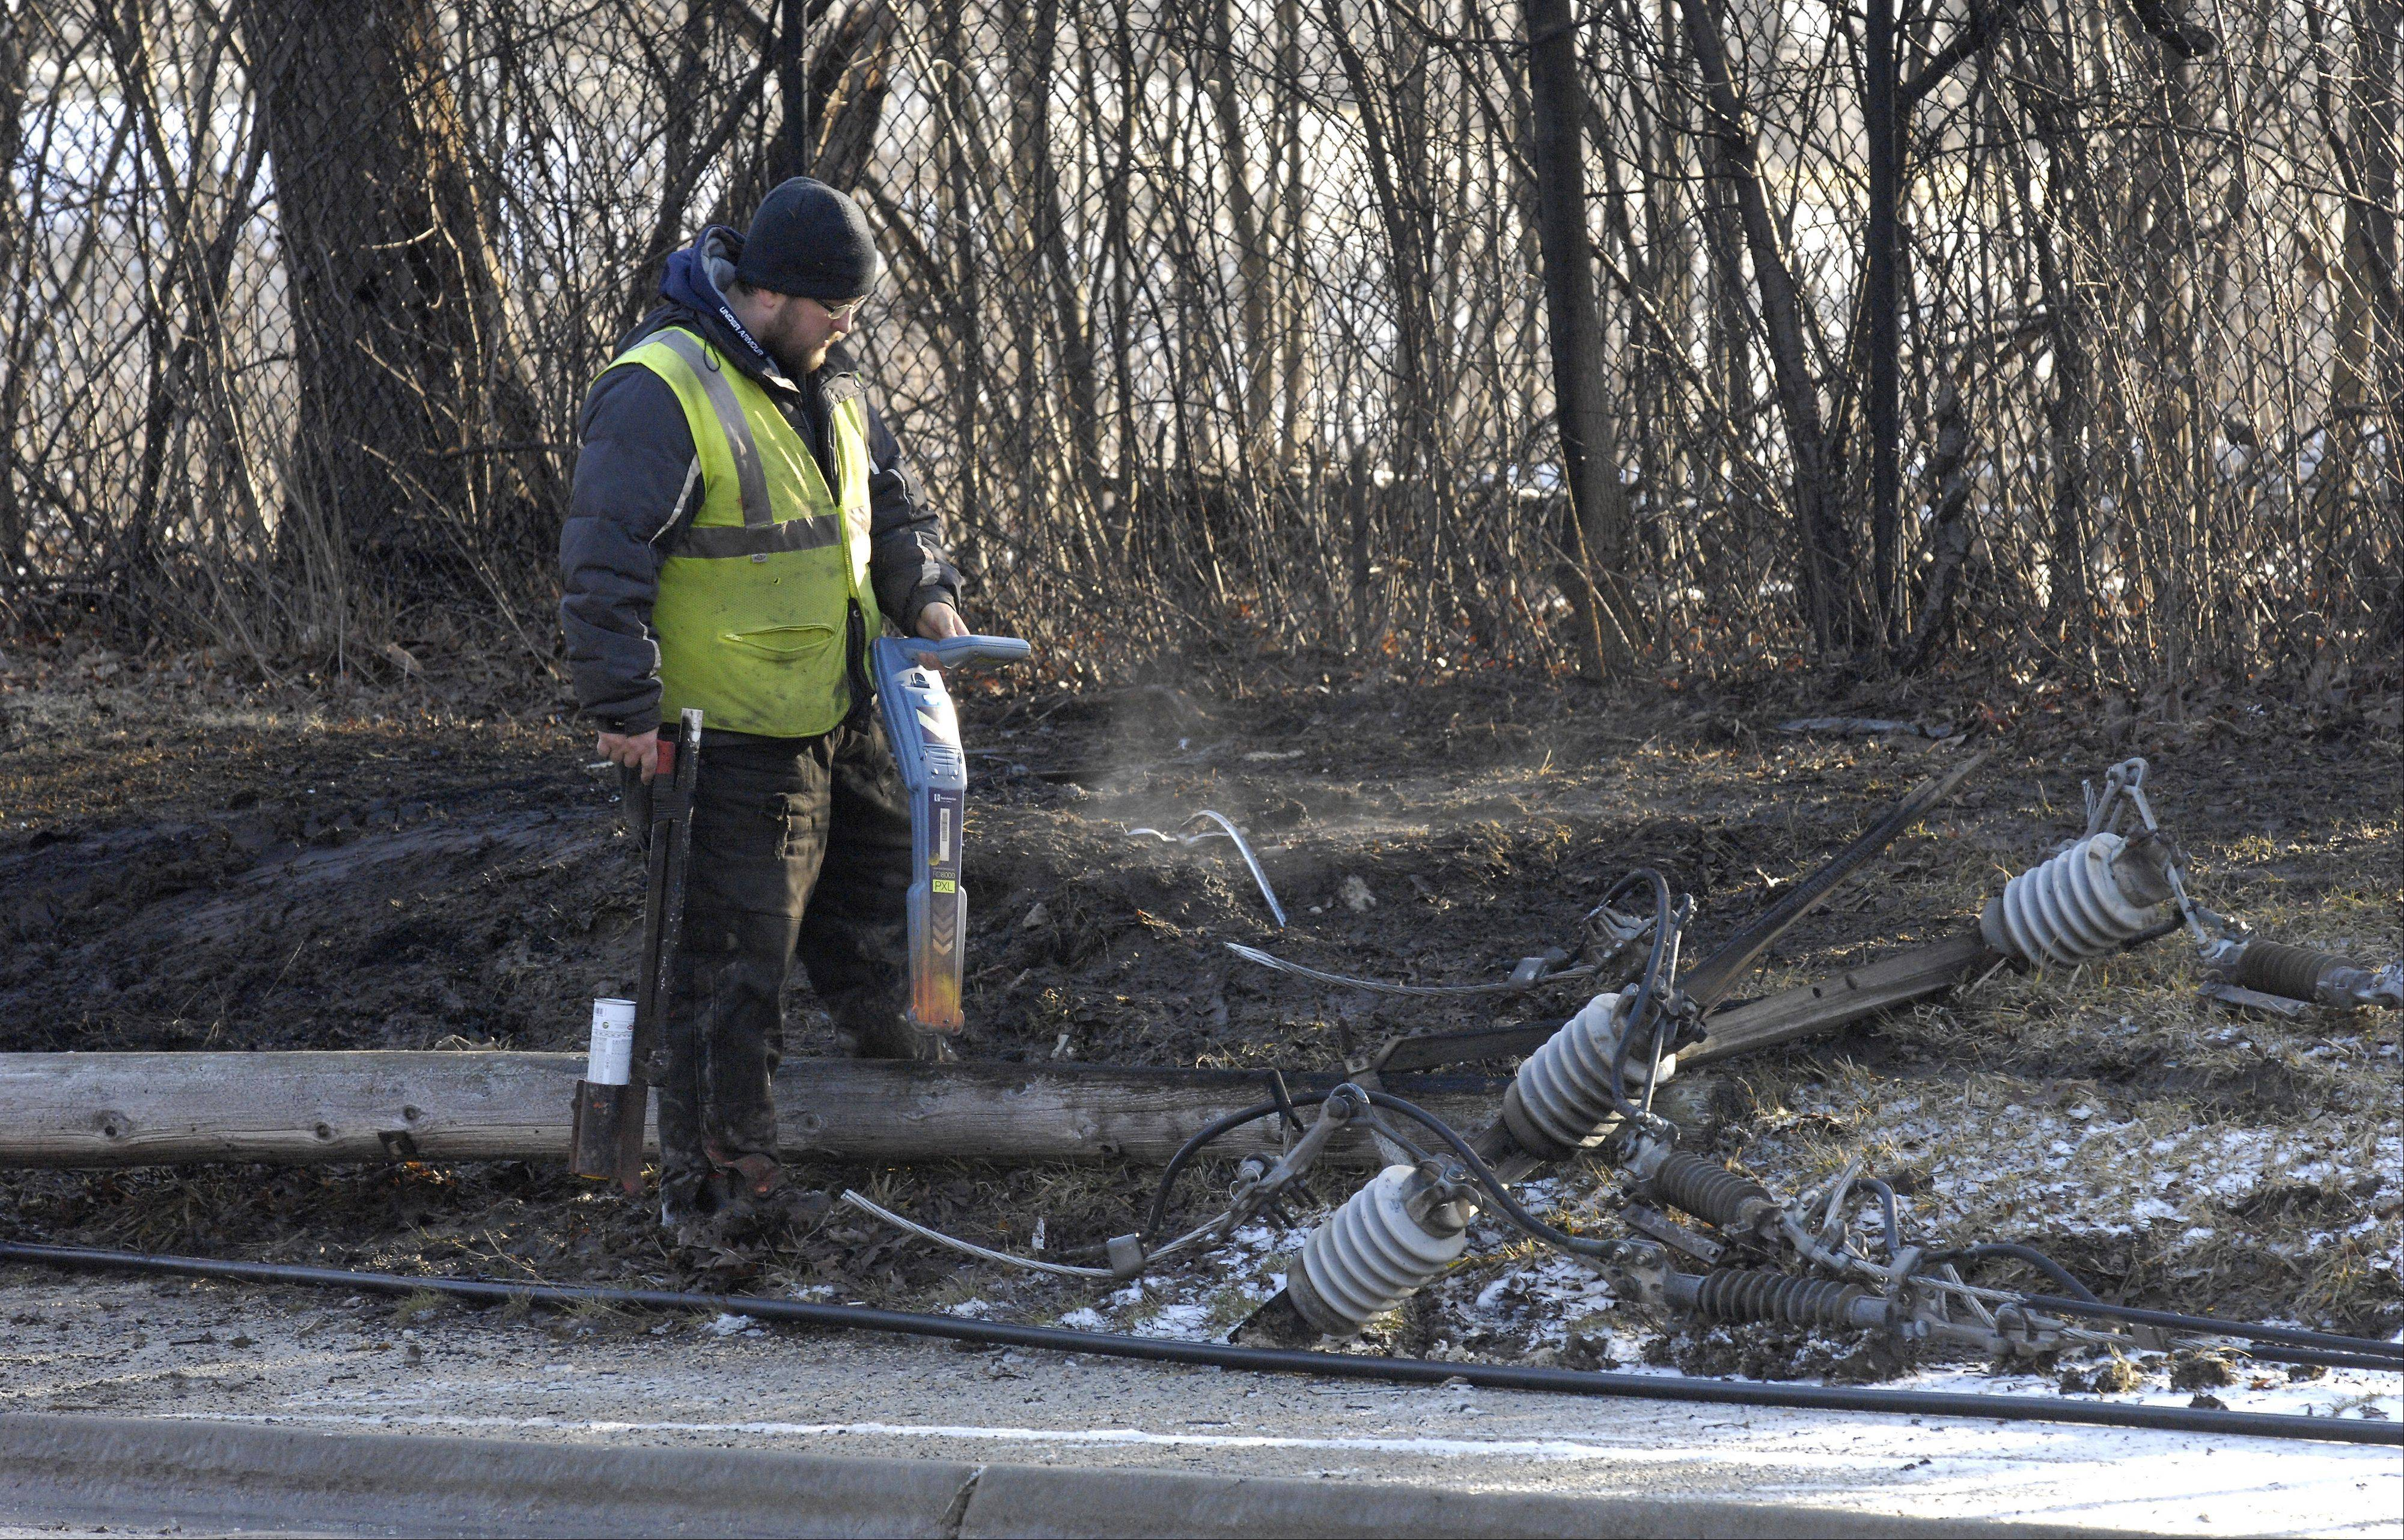 A worker starts preparation for repair of a utility pole that was knocked down during an early-morning Tuesday crash along Winfield Road, south of Roosevelt Road near Winfield. The vehicle involved was engulfed in flames.